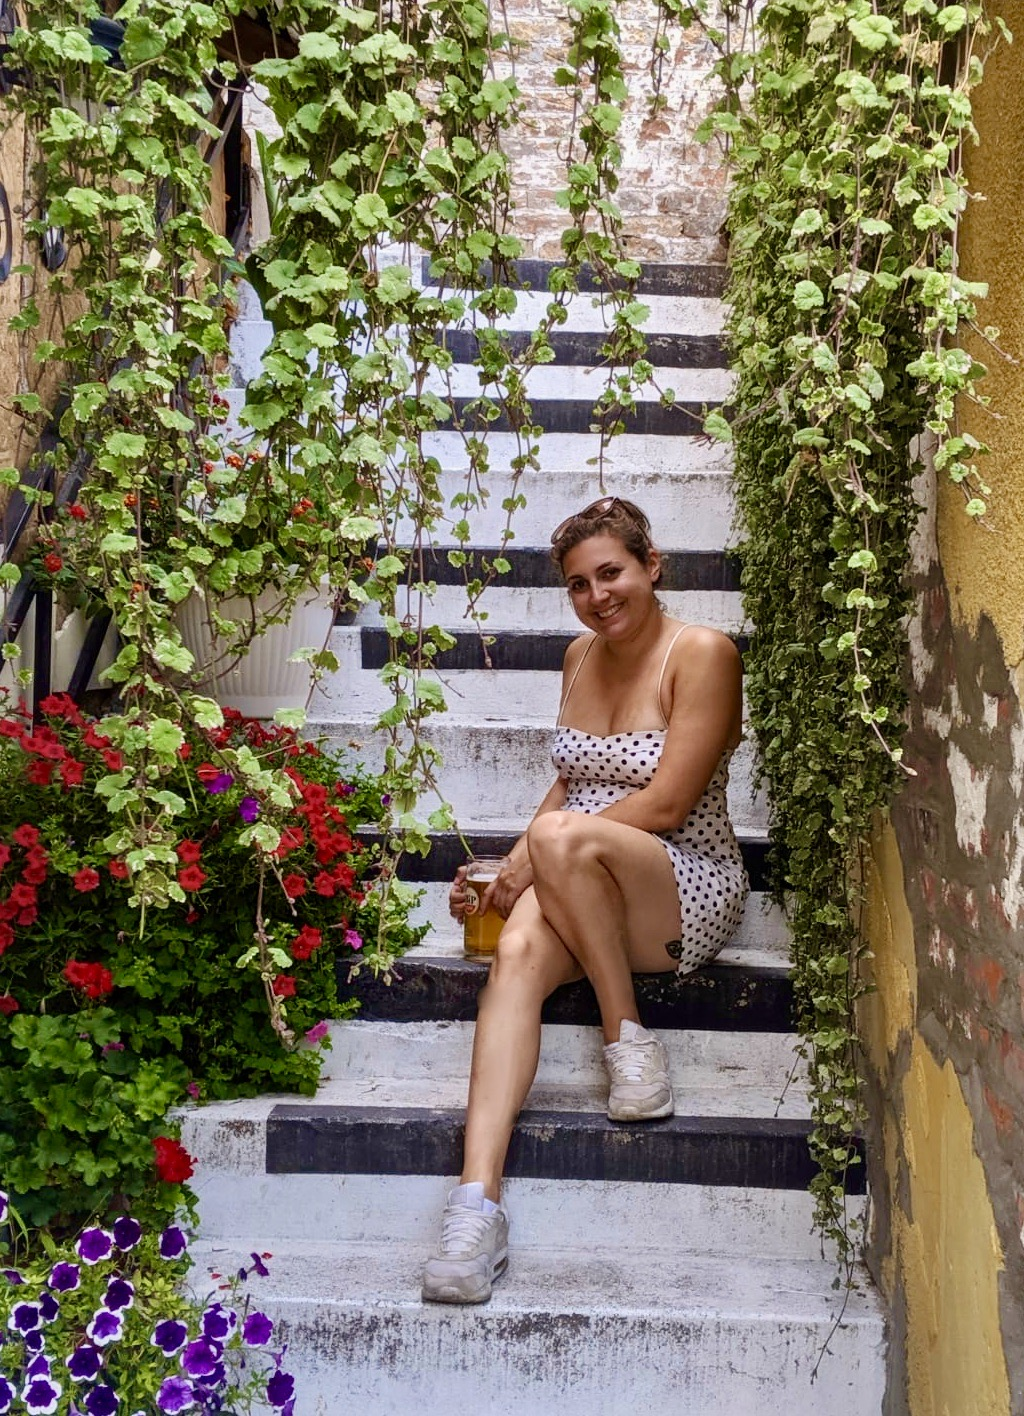 Visit Belgrade - Nell sat on some steps surrounded by plants and flowers, drinking a beer at a bar in Belgrade, Serbia